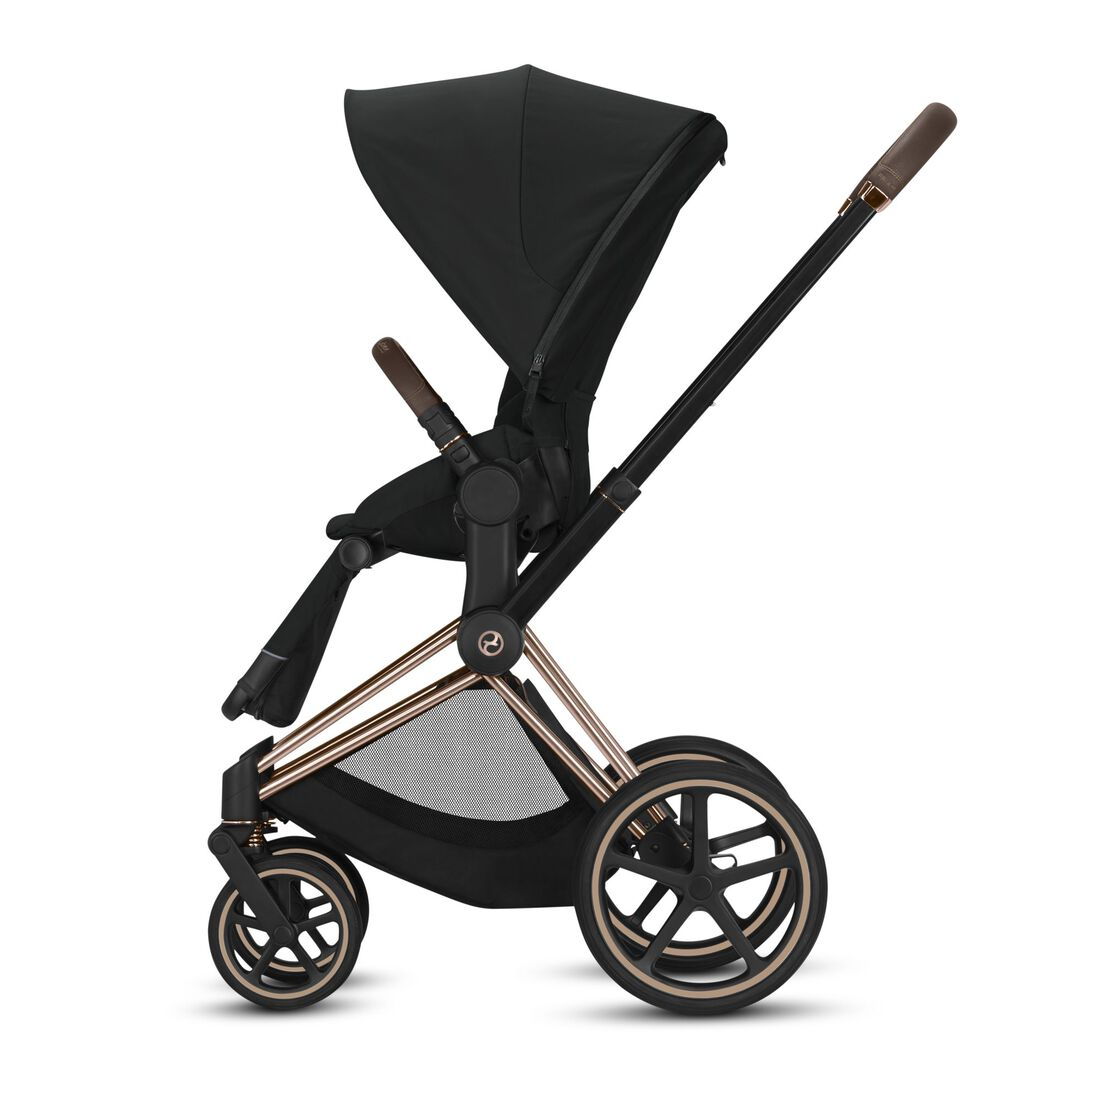 CYBEX Balios S 2-in-1 Pushchair - XXL SUN CANOPY WITH MESH INSERT